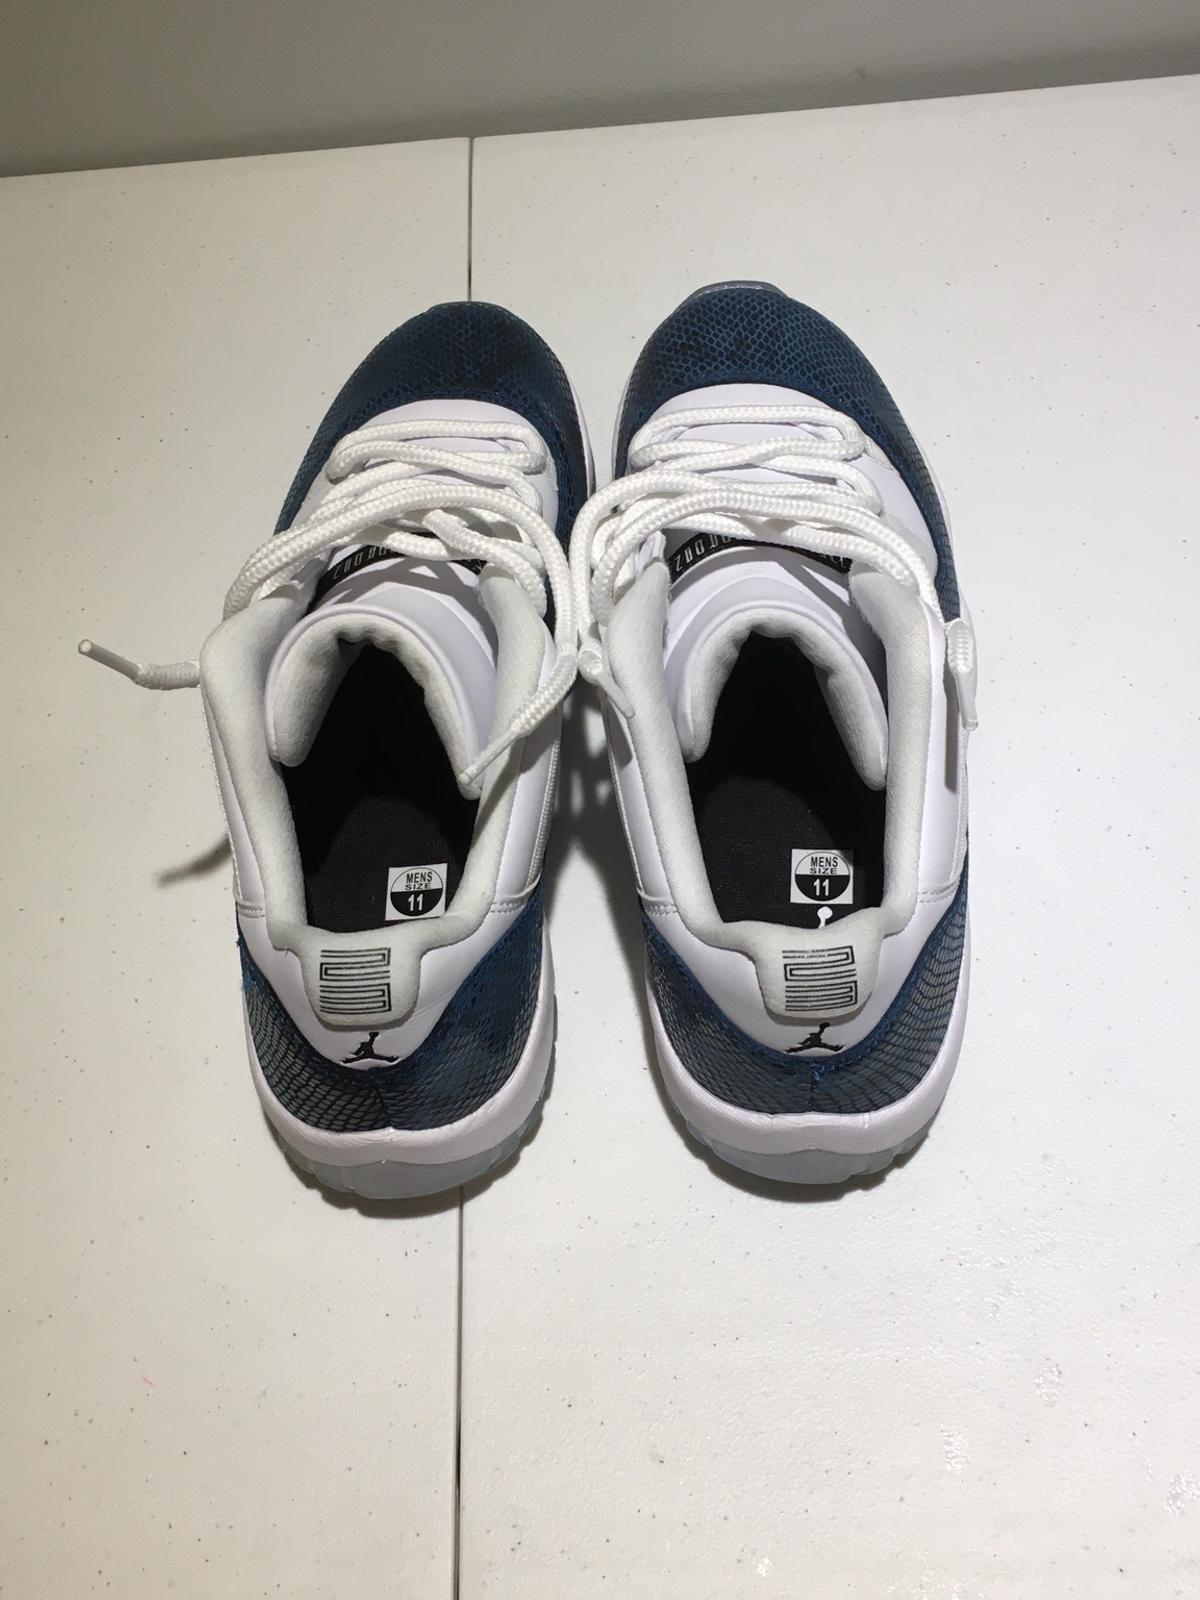 size: 11 worn once send offers